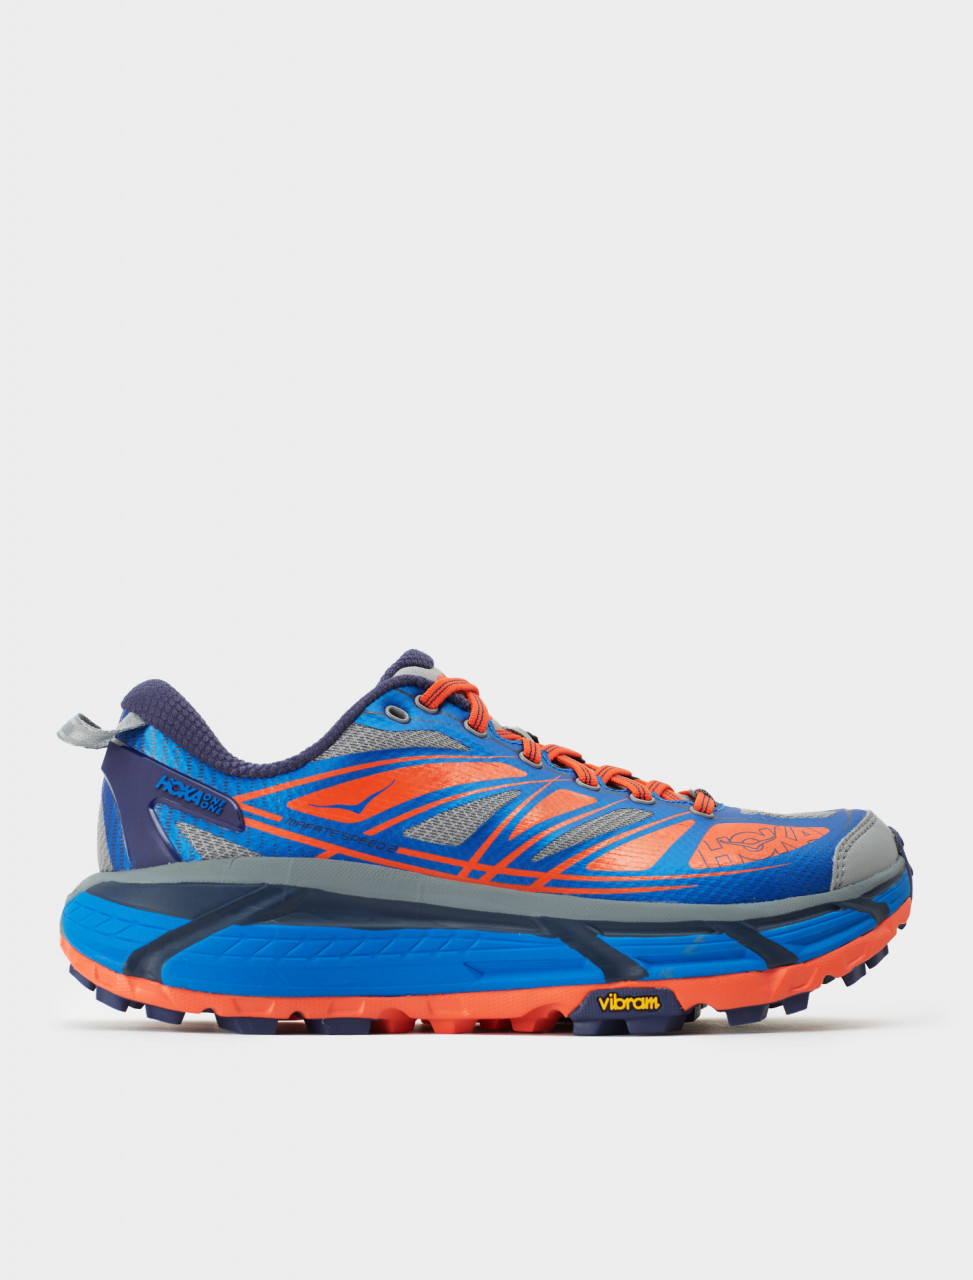 Hoka One One MAFATE SPEED 2 Sneaker in Imperial Blue/Mandarin Red